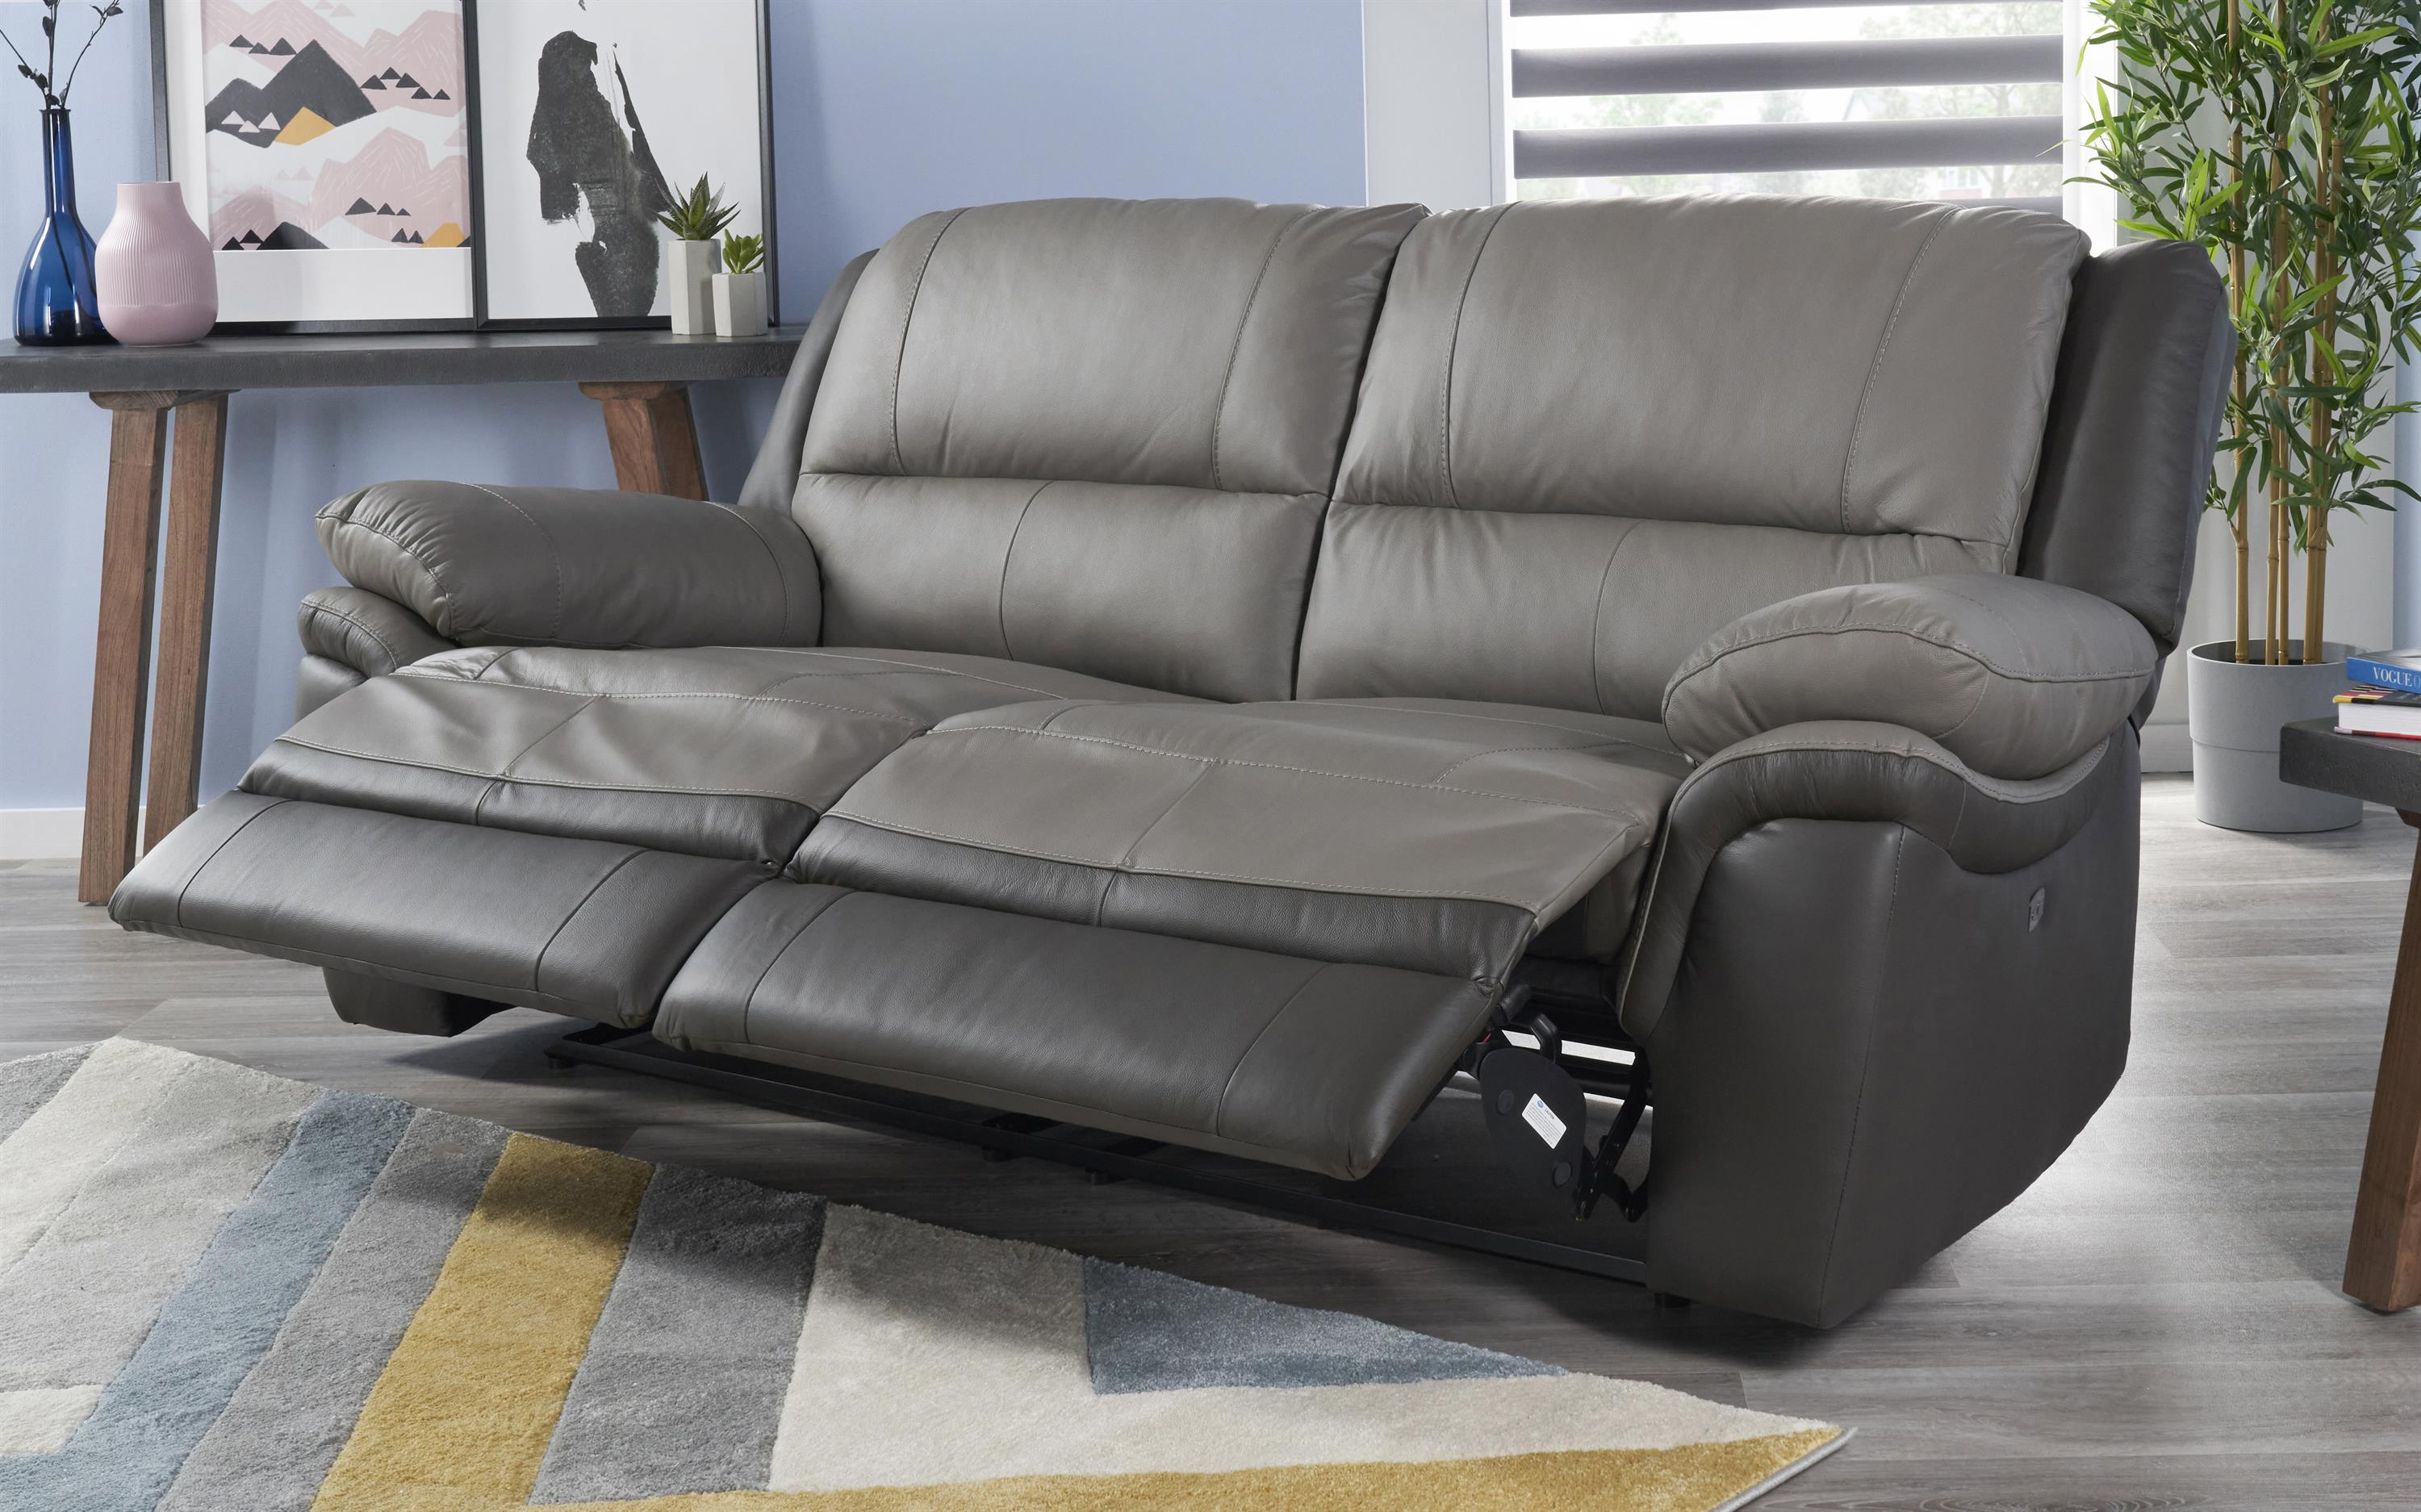 Pluto 3 Seater Power Recliner Sofa